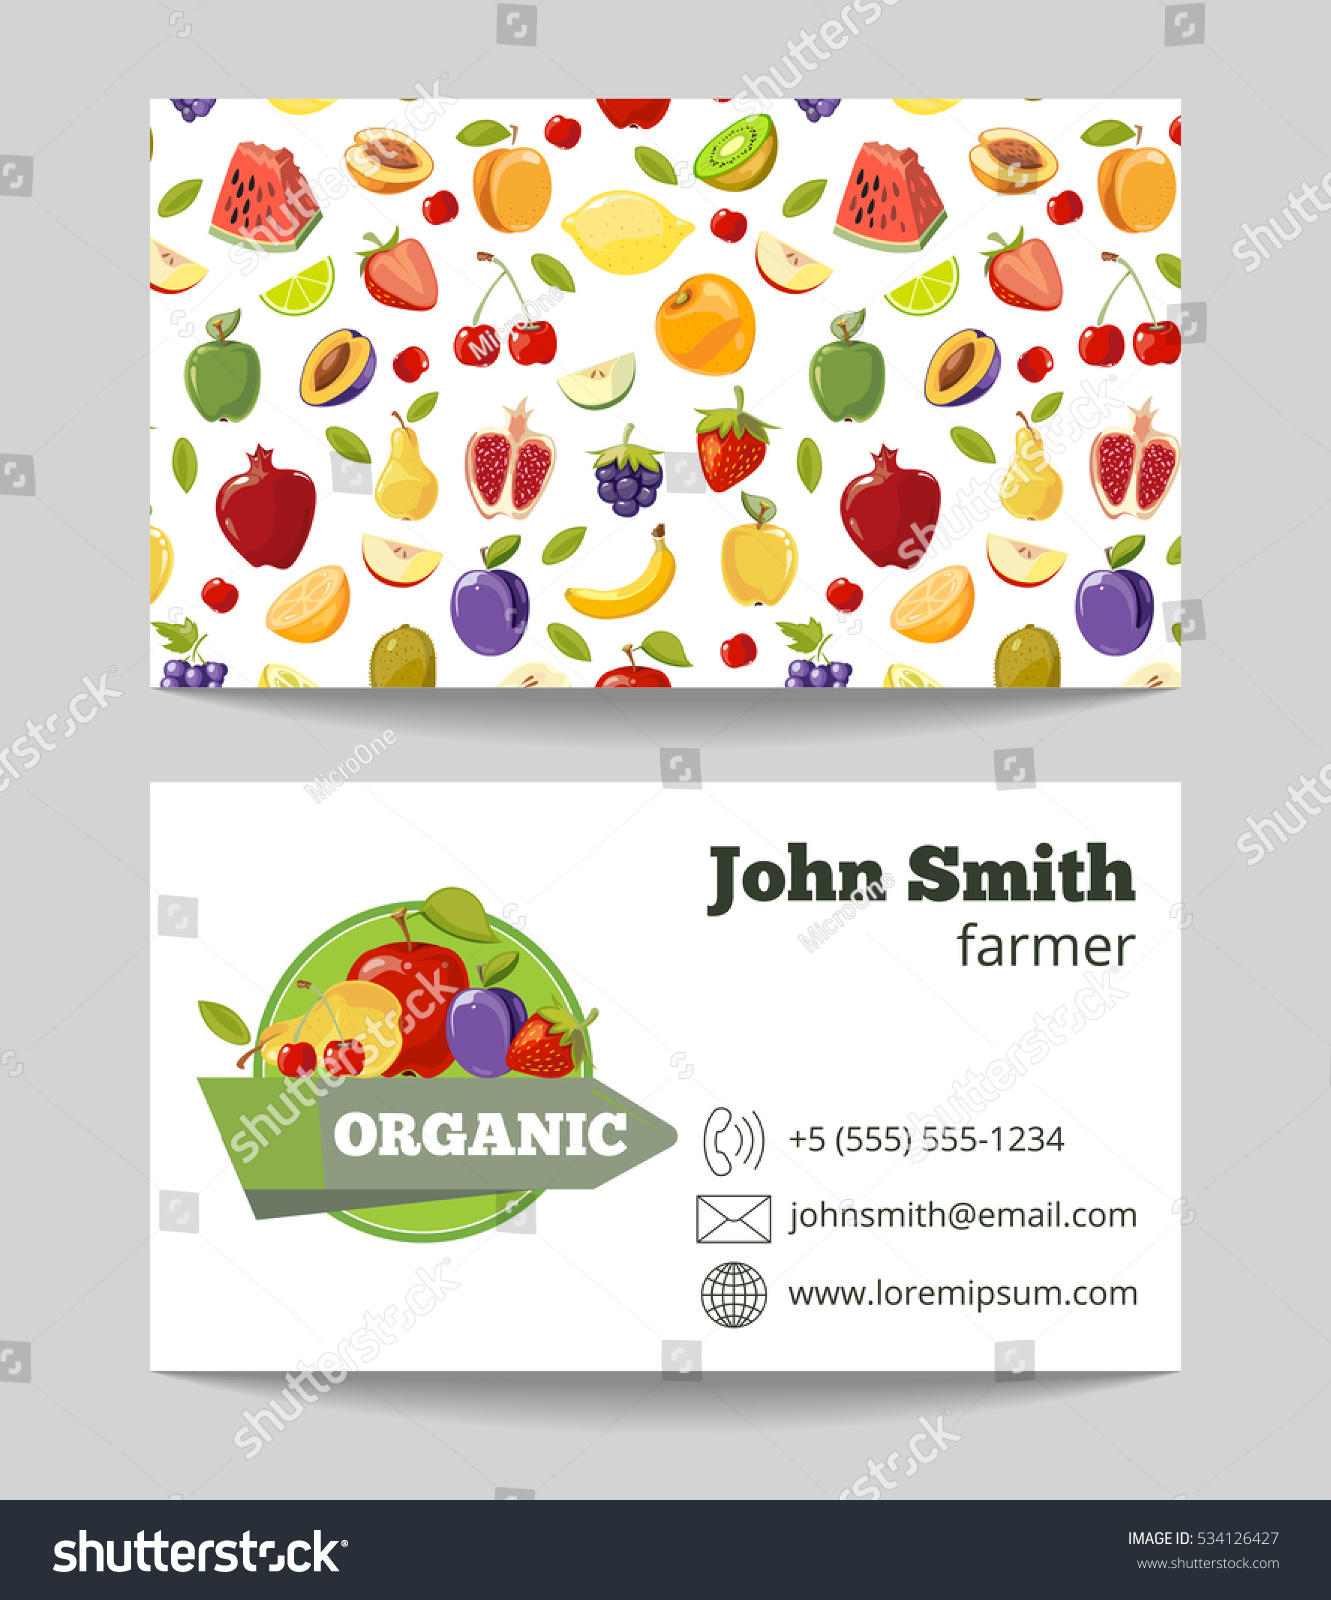 Organic fruits farmer business card template stock illustration organic fruits farmer business card template fruit farm company illustration magicingreecefo Choice Image